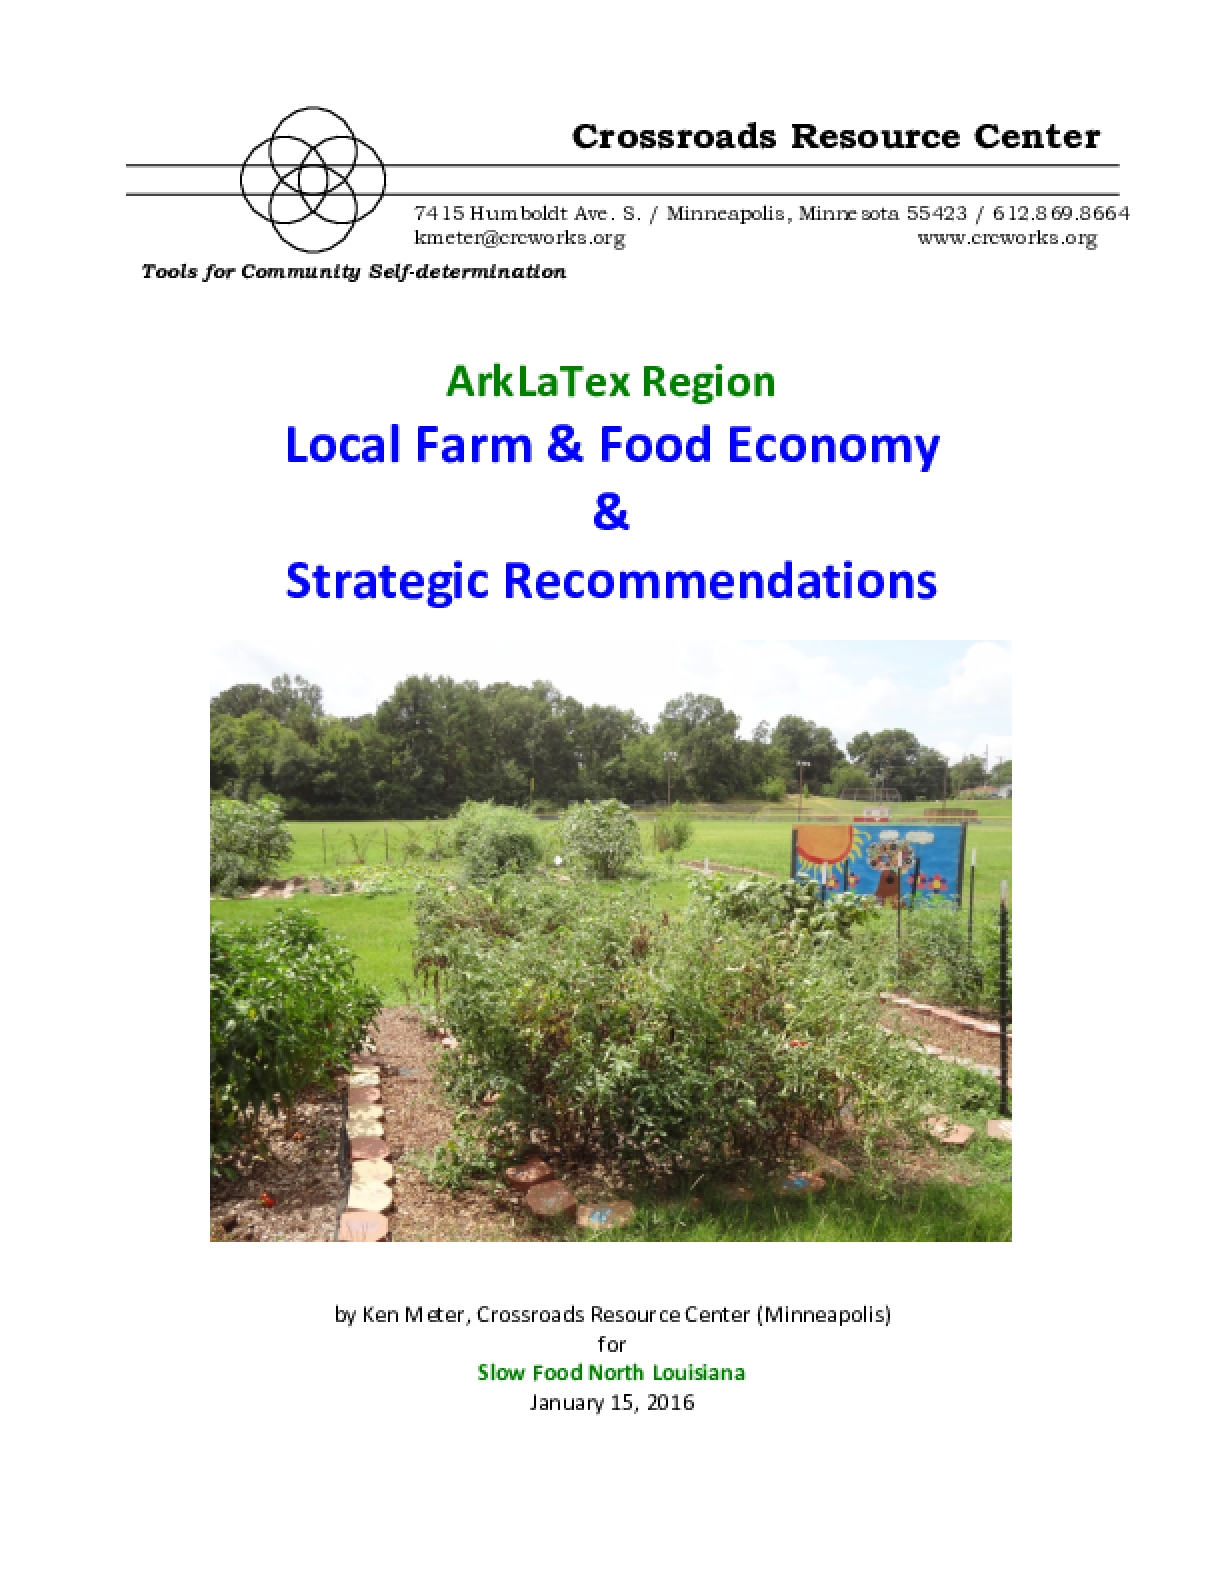 ArkLaTex Region Local Farm & Food Economy & Strategic Recommendations